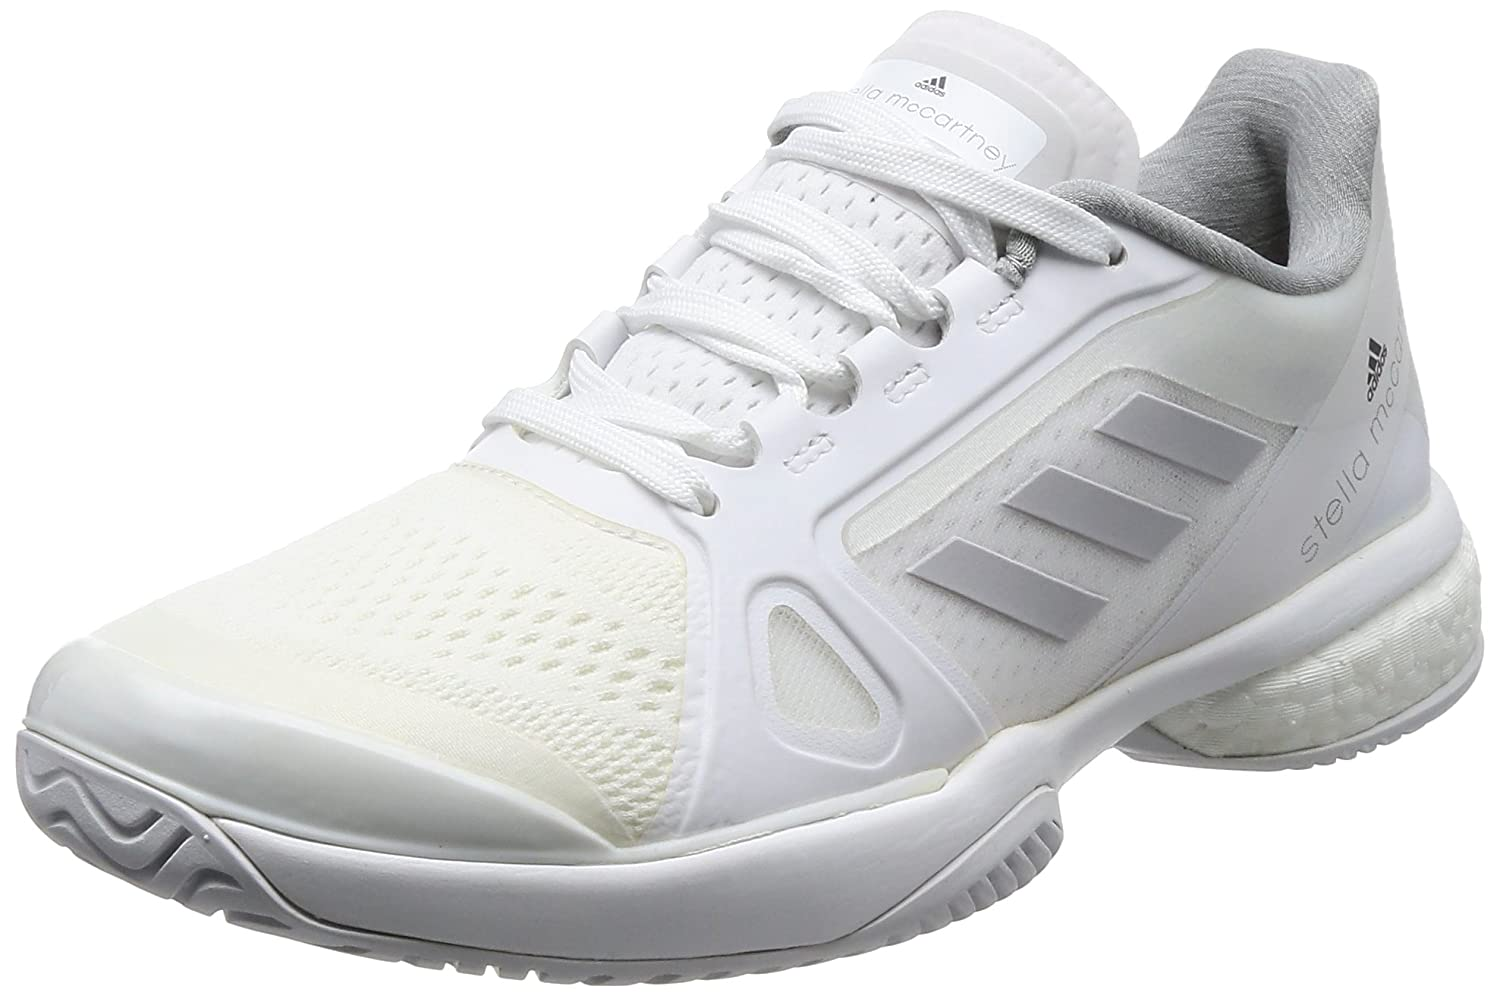 df3aedb110 adidas Women s by by Stella McCartney Barricade Boost 2017 Tennis Shoes   Amazon.co.uk  Shoes   Bags